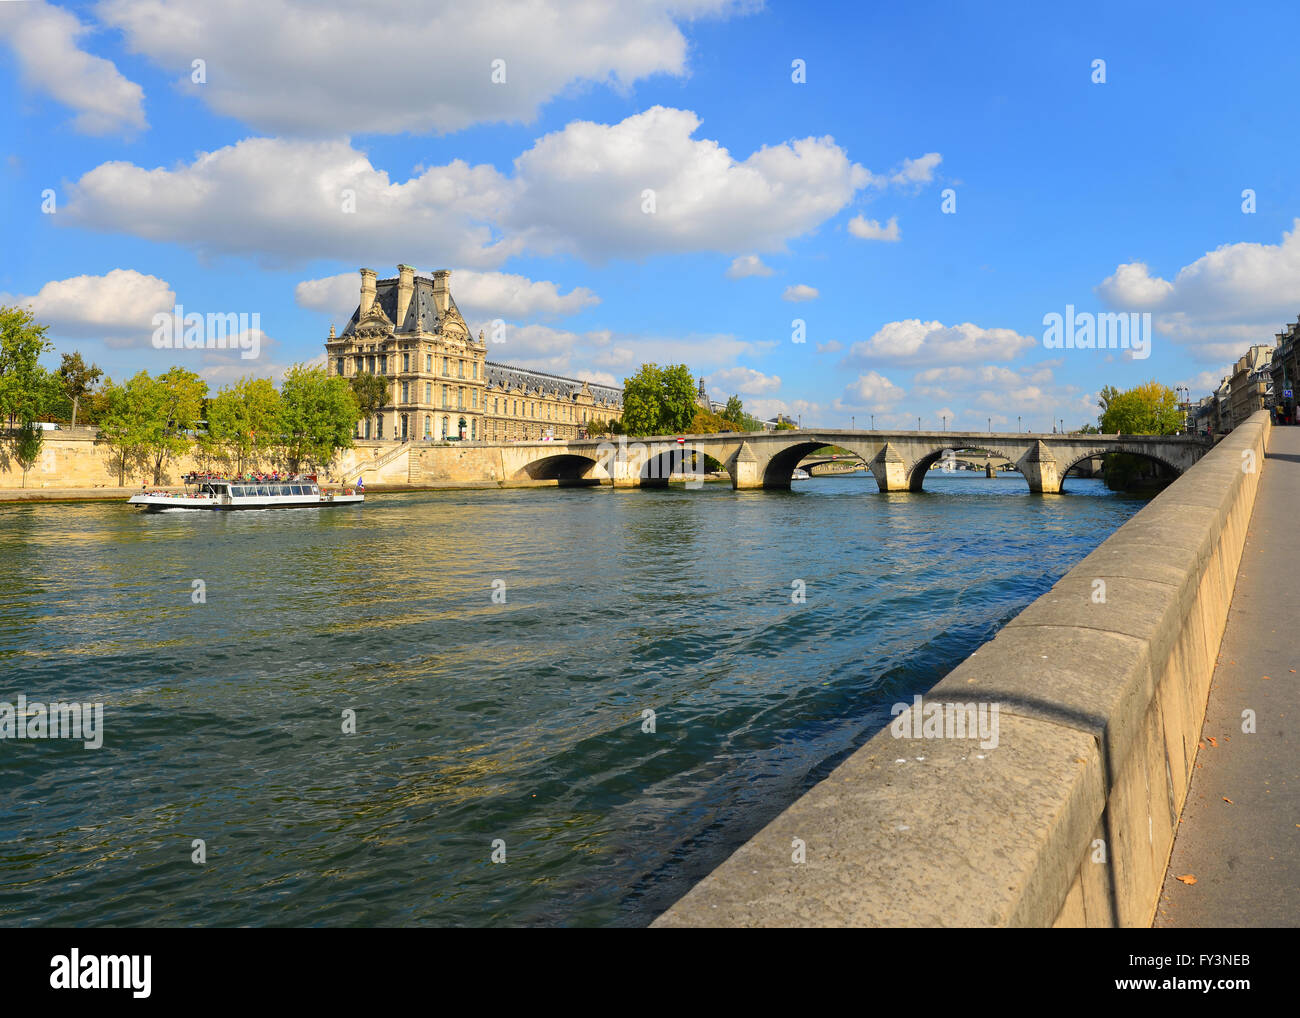 The left bank of the Seine in Paris across from the Tuileries with the Pont Royal the Louvre and a Bateau Mouche. - Stock Image